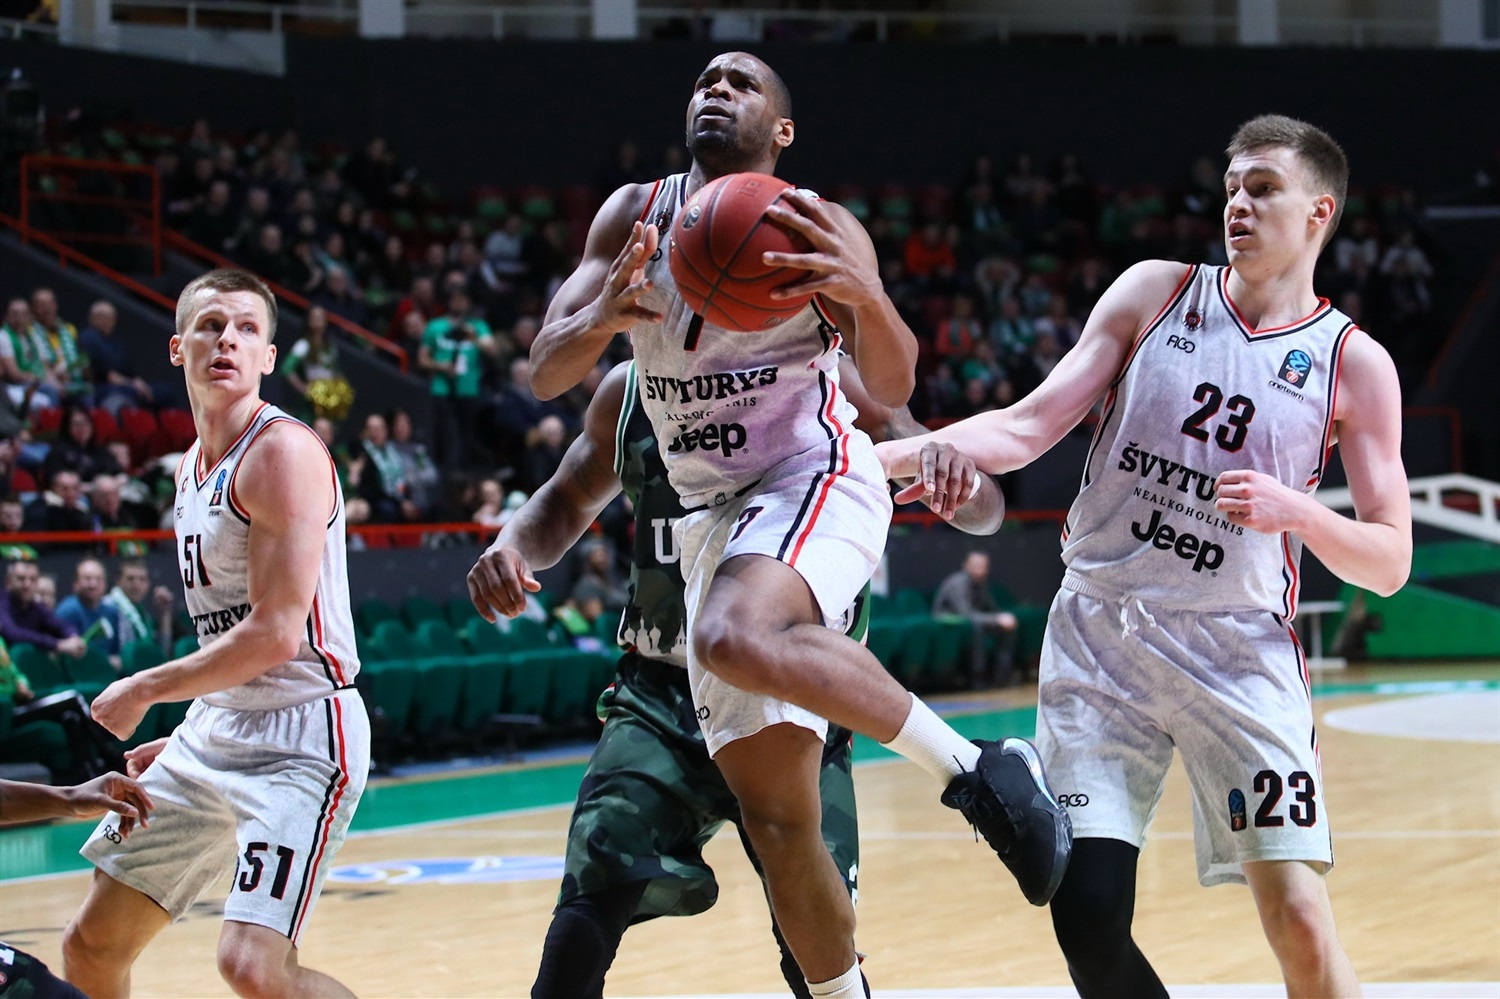 Terrell Holloway - Rytas Vilnius ( photo Kseniya Bogdanova - UNICS) - EC19